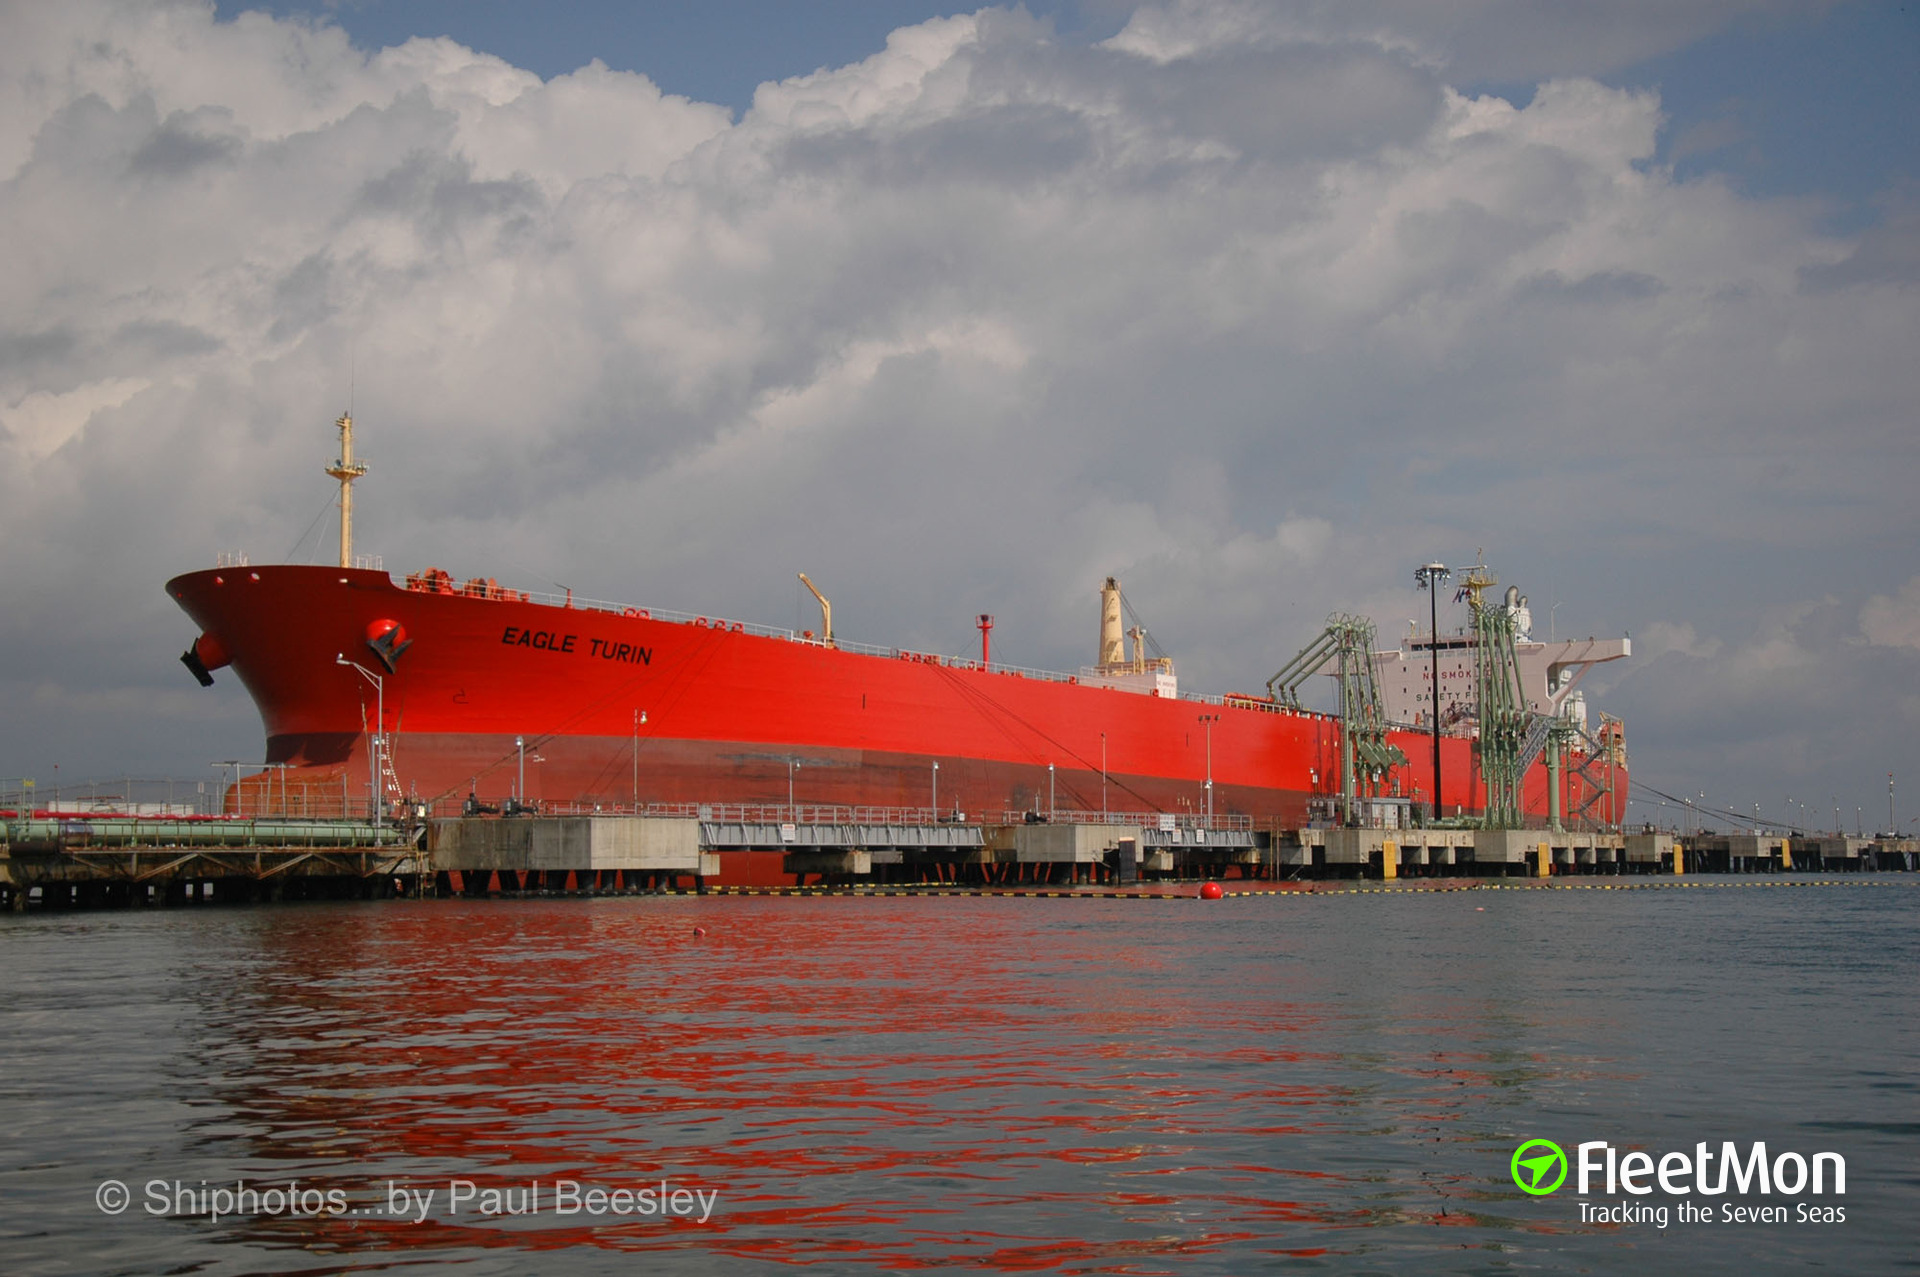 Disaster avoided thanks to tankers' Captains and port authorities, La Coruna, Spain